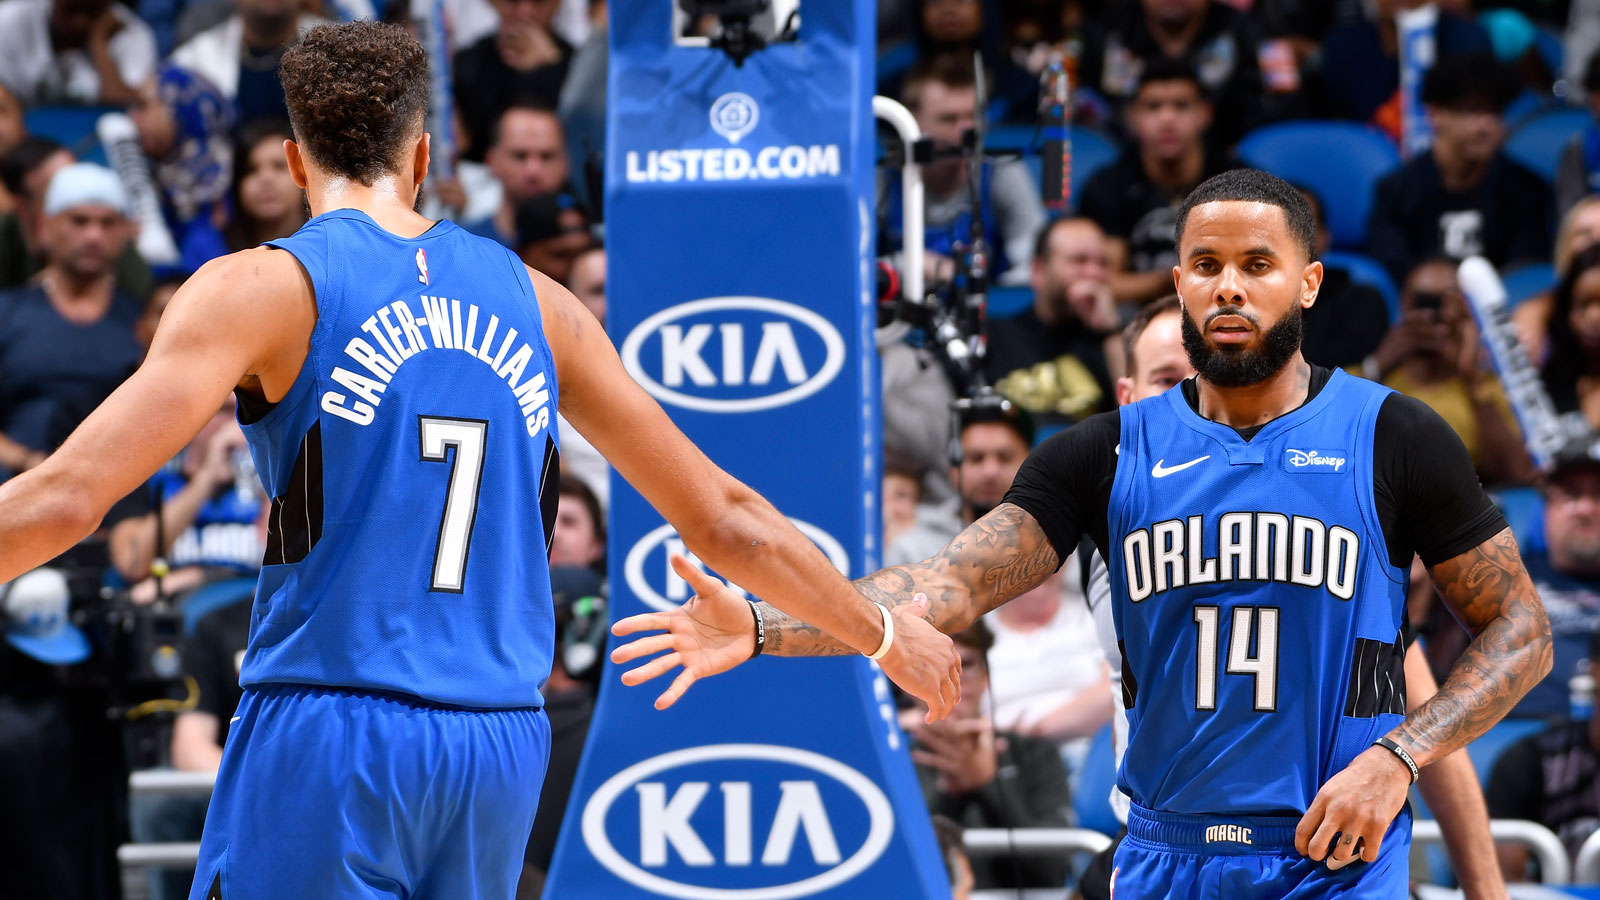 D.J. Augustin and Michael Carter-Williams